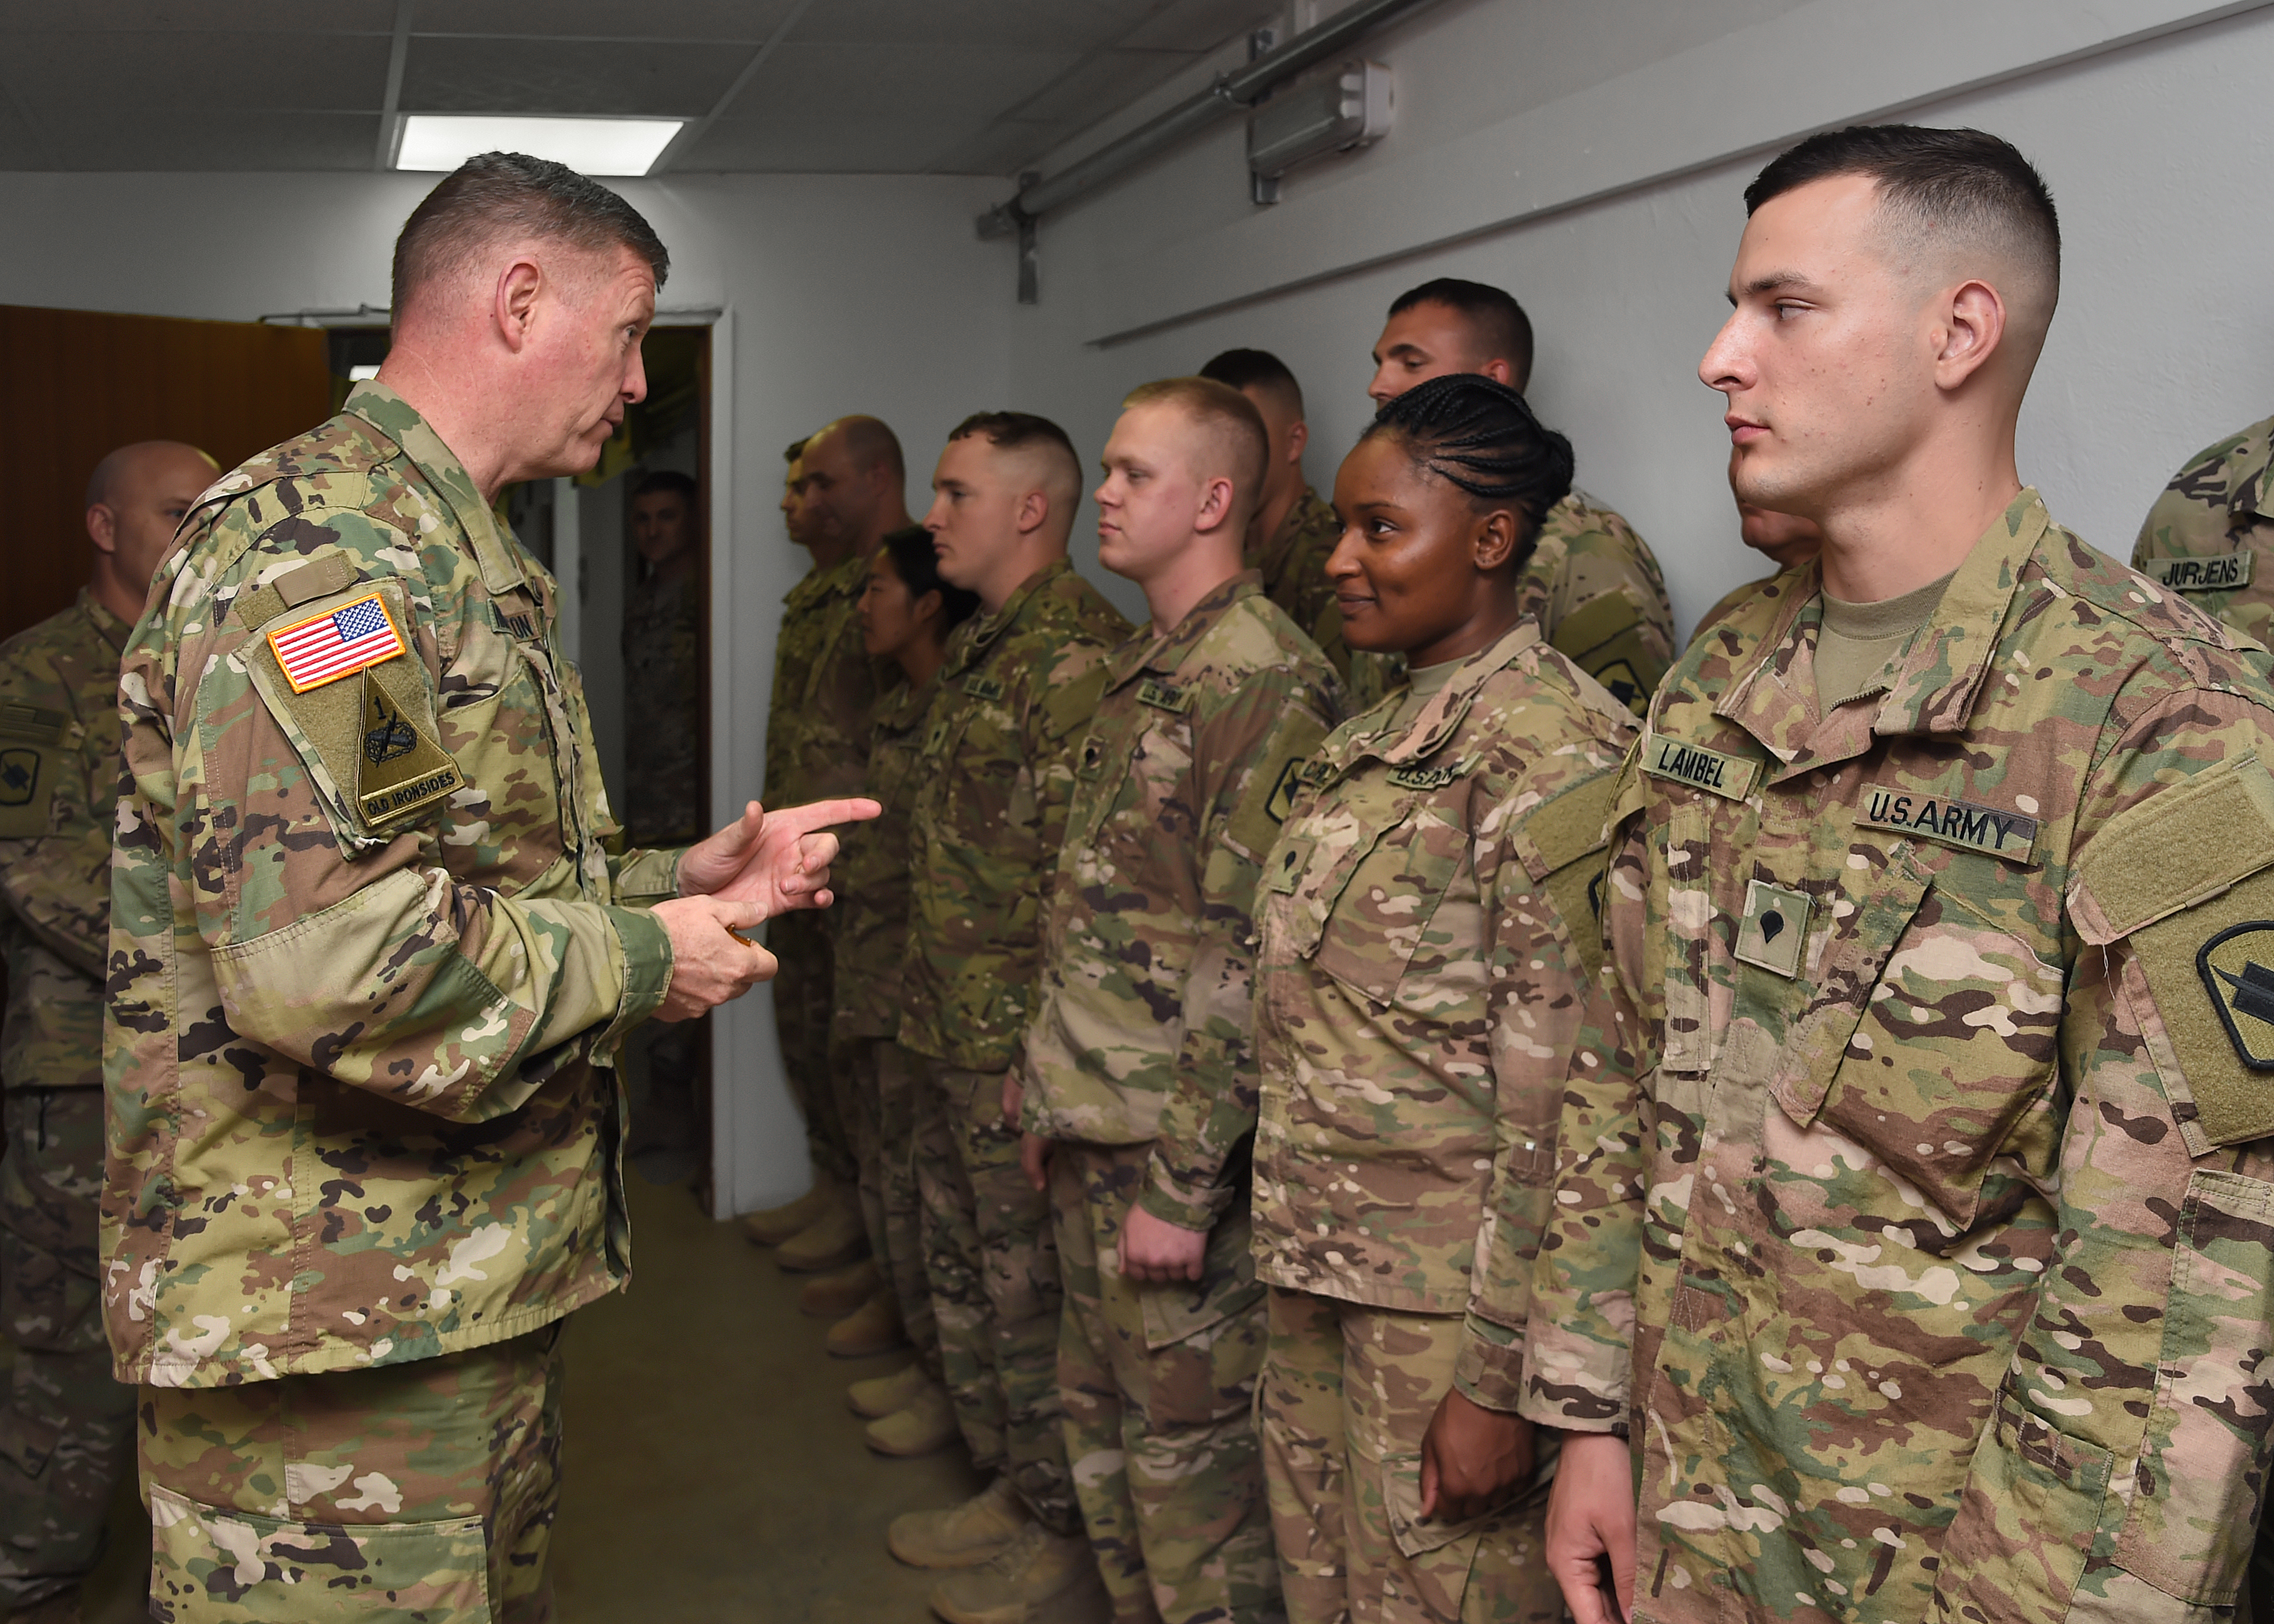 U.S. Army Maj. Gen. Joseph Harrington, commanding general of U.S. Army Africa (USARAF) visits with infantry and civil affairs Soldiers assigned to Combined Joint Task Force-Horn of Africa at Camp Lemonnier, Djibouti, March 22, 2017. USARAF provides mission command and employs forces to set the theater, conduct security force assistance, and provide support to joint and international partners in order to achieve U.S. Africa Command theater campaign plan objectives. (U.S. Air National Guard photo by Master Sgt. Paul Gorman)